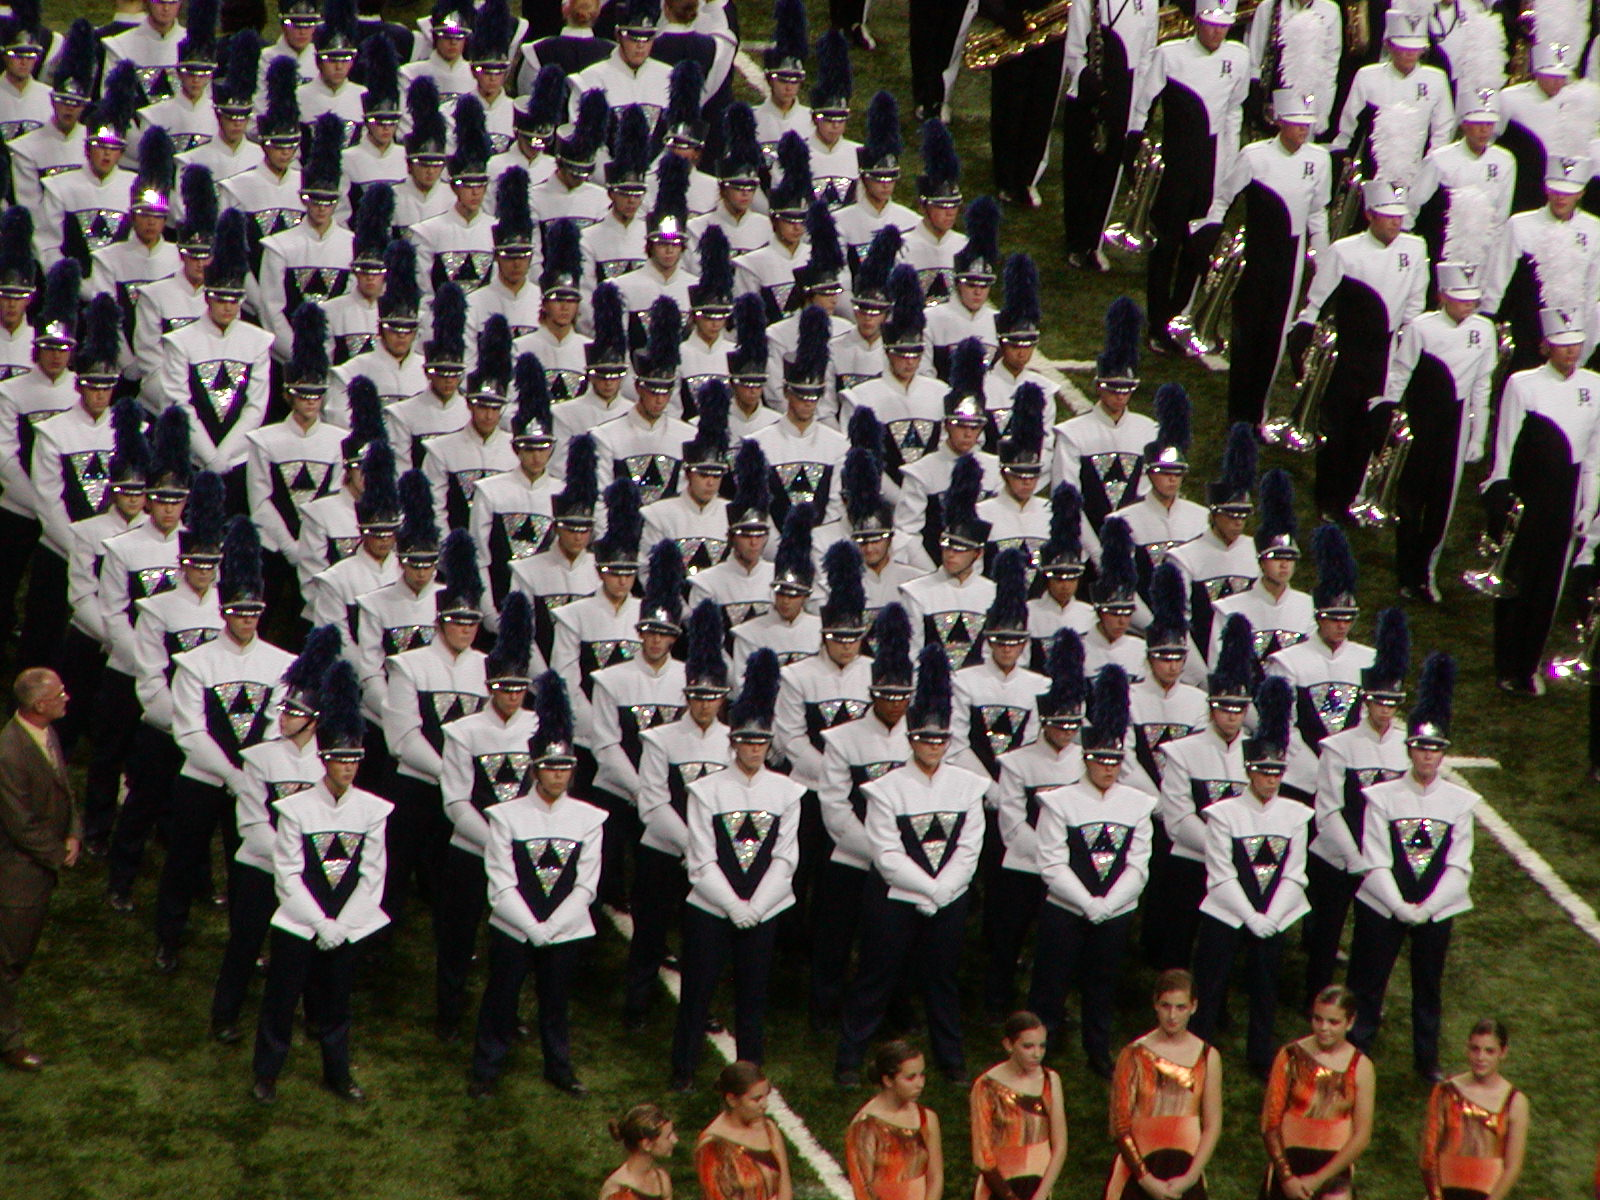 High School Marching Band Logos http://commons.wikimedia.org/wiki/File:Rosemount_High_School_marching_band.jpg